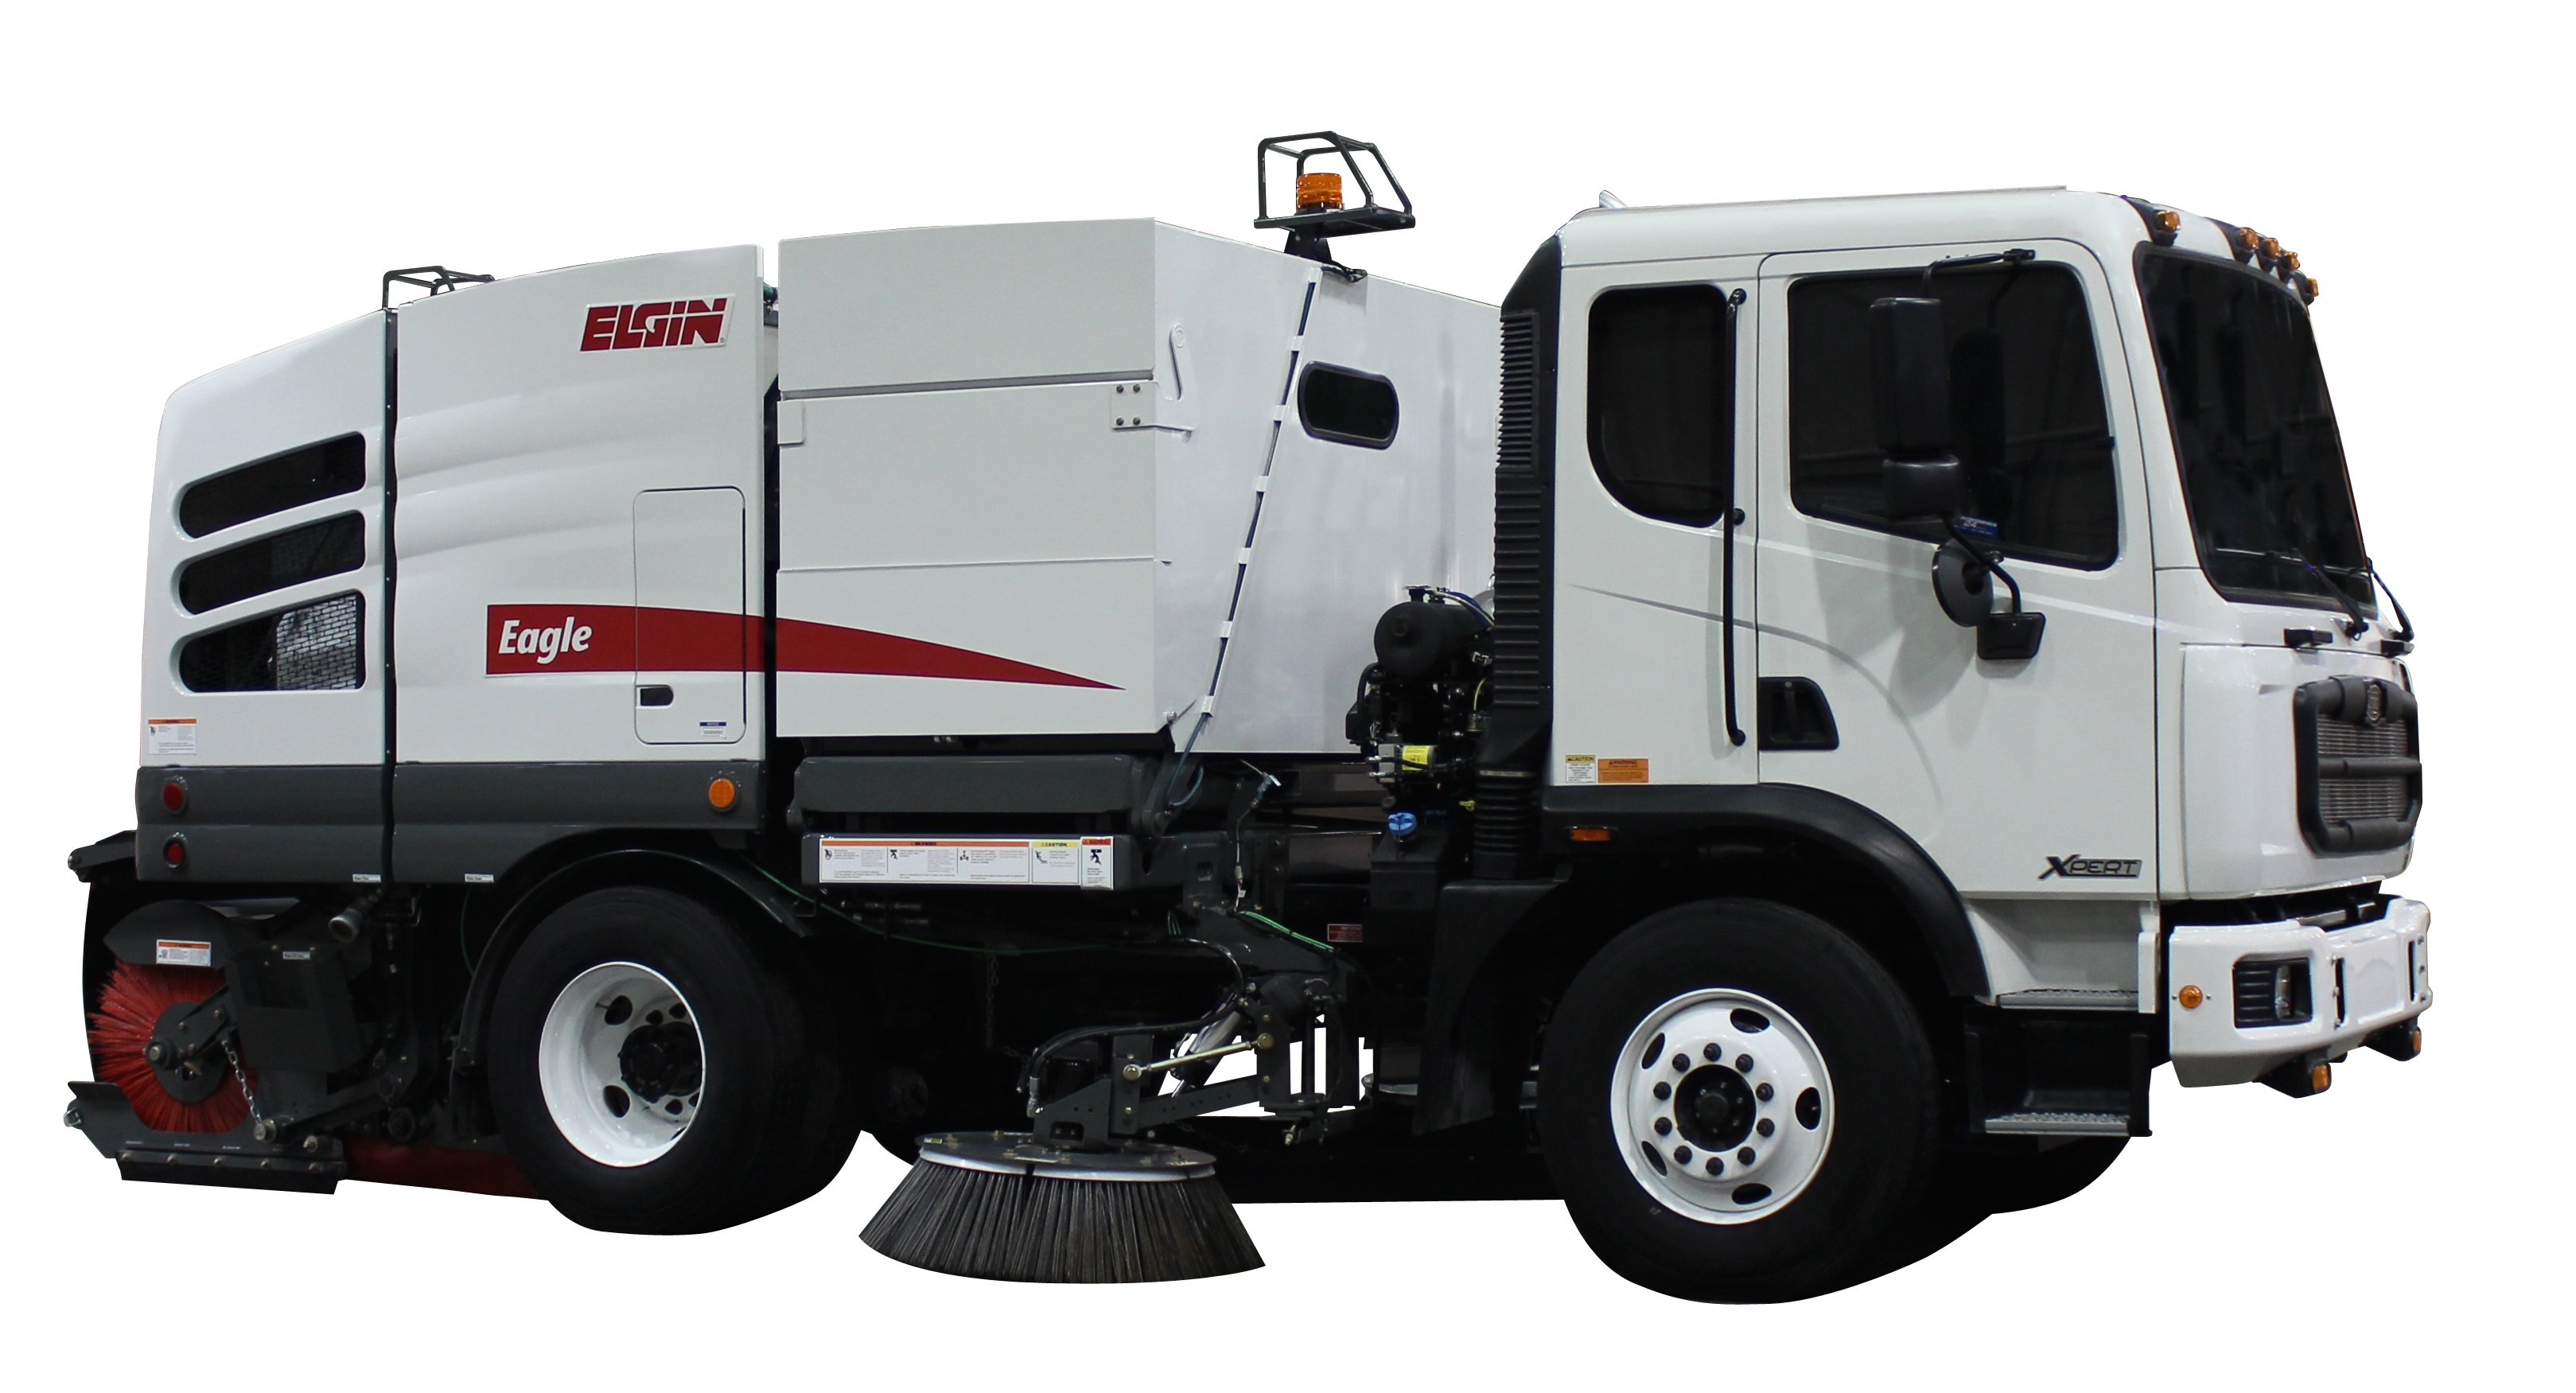 EAGLE STREET SWEEPER Preview Image